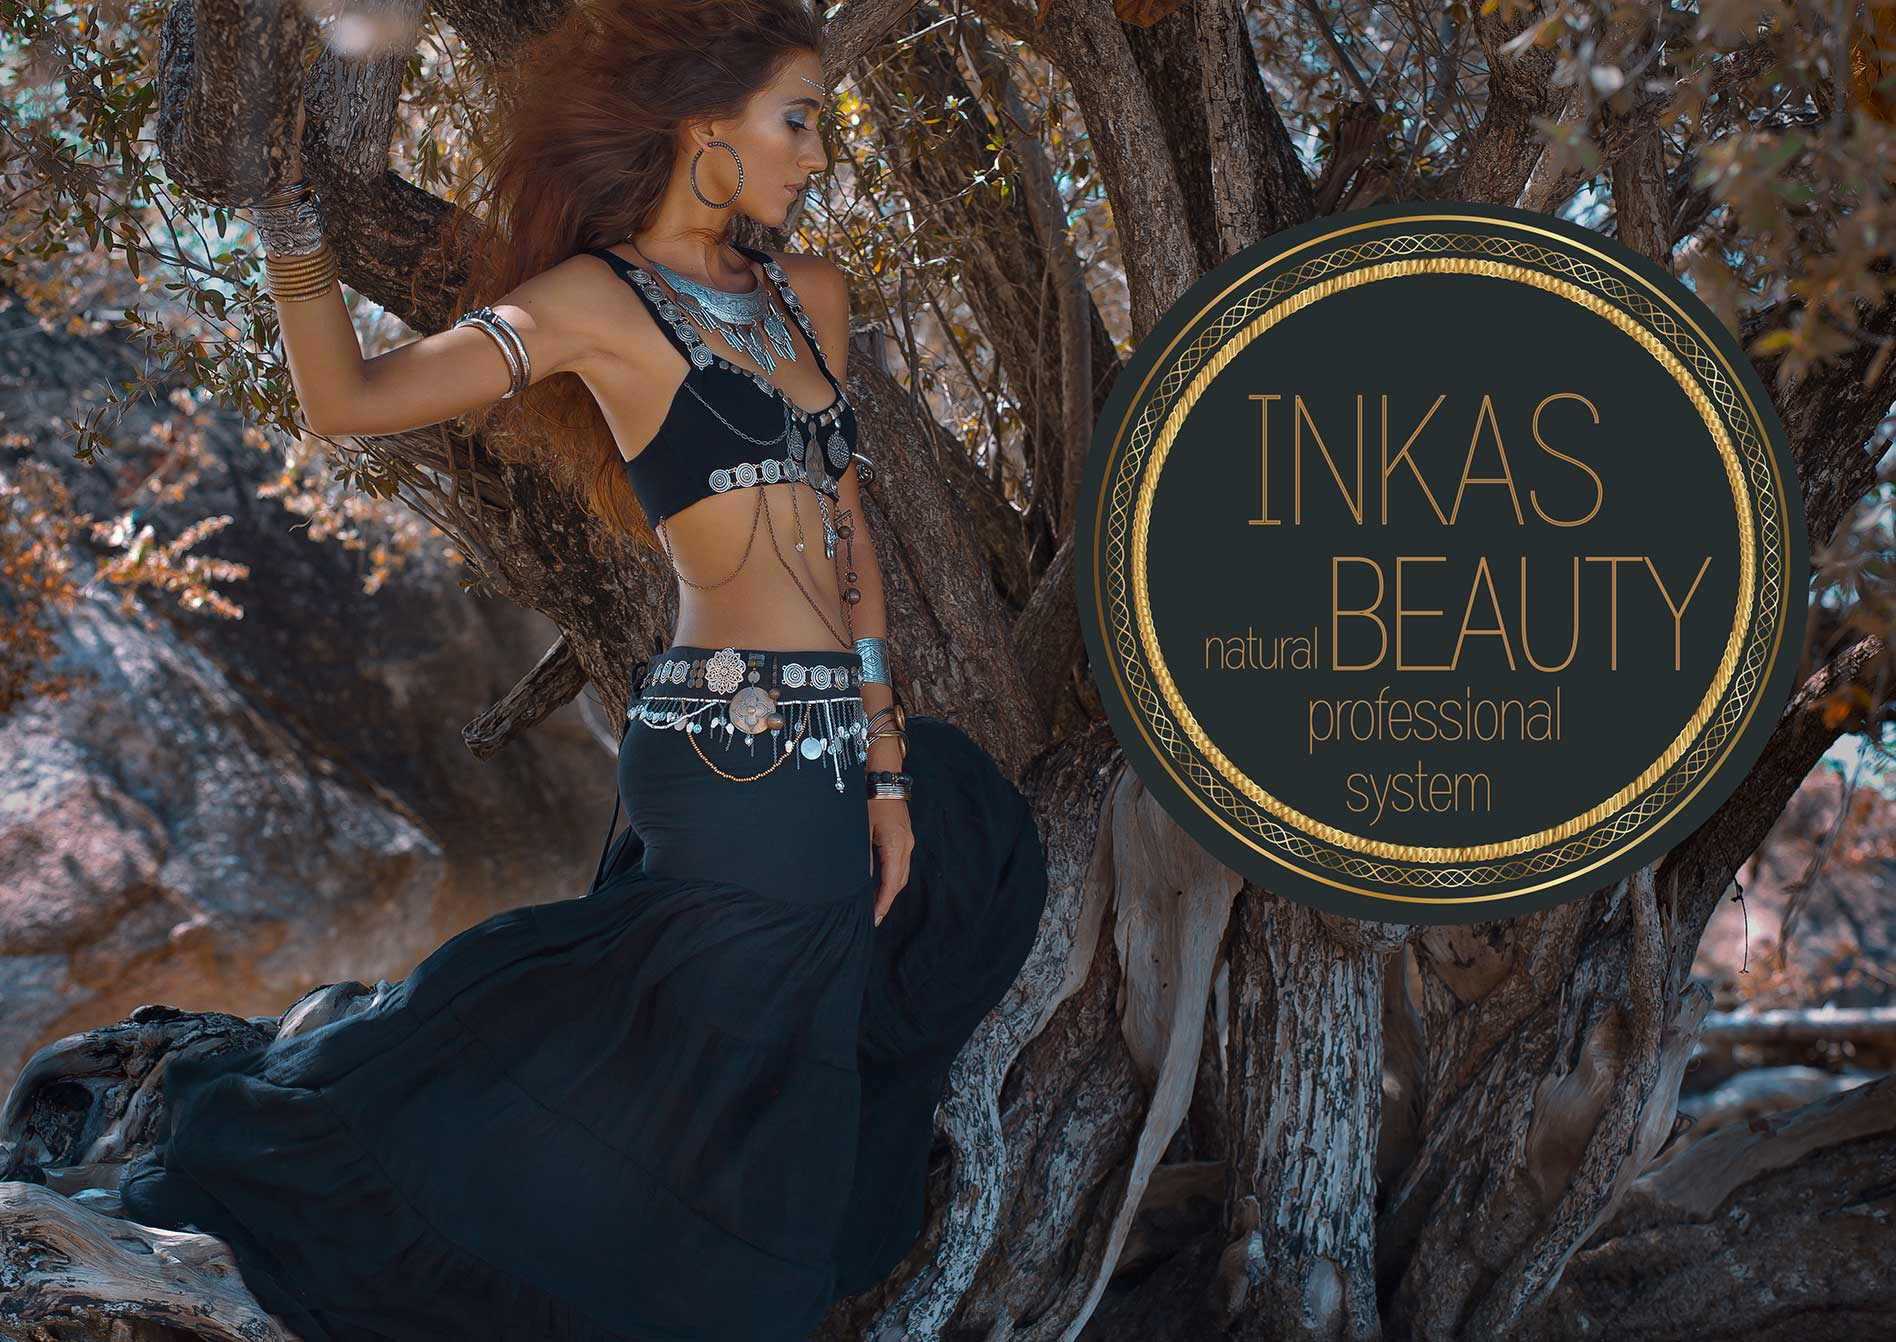 Inkas Beauty Concept